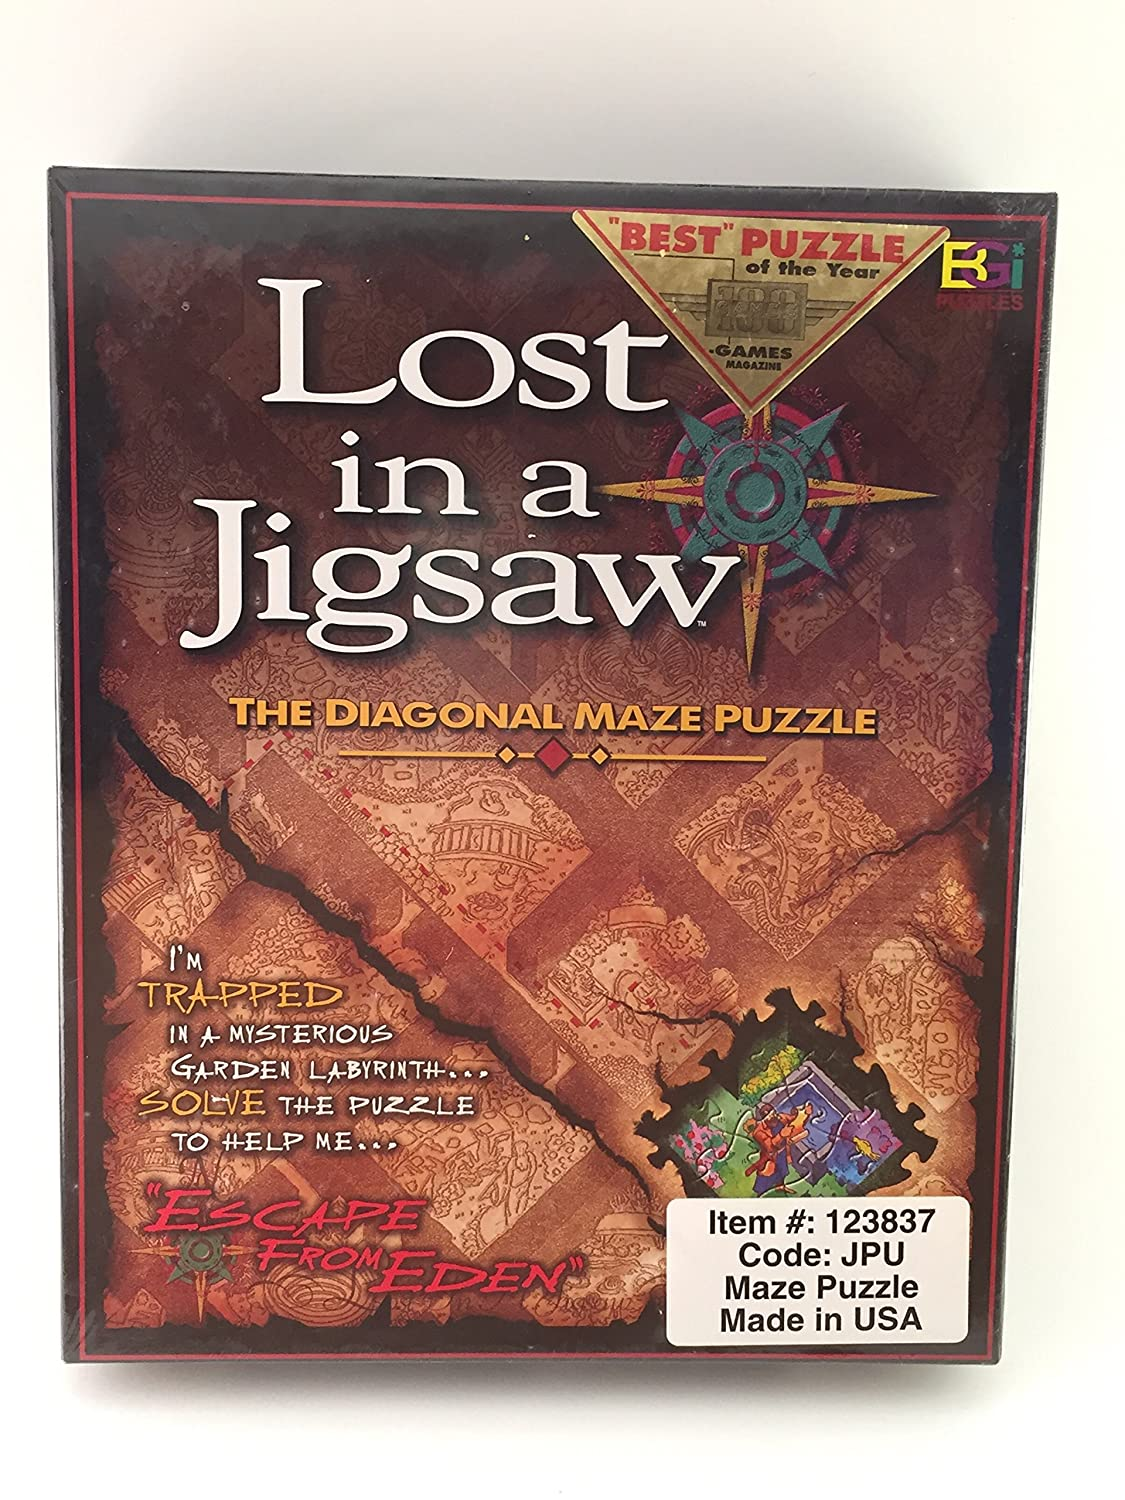 Lost in a Jigsaw: The Diagonal Maze Puzzle by Buffalo Games